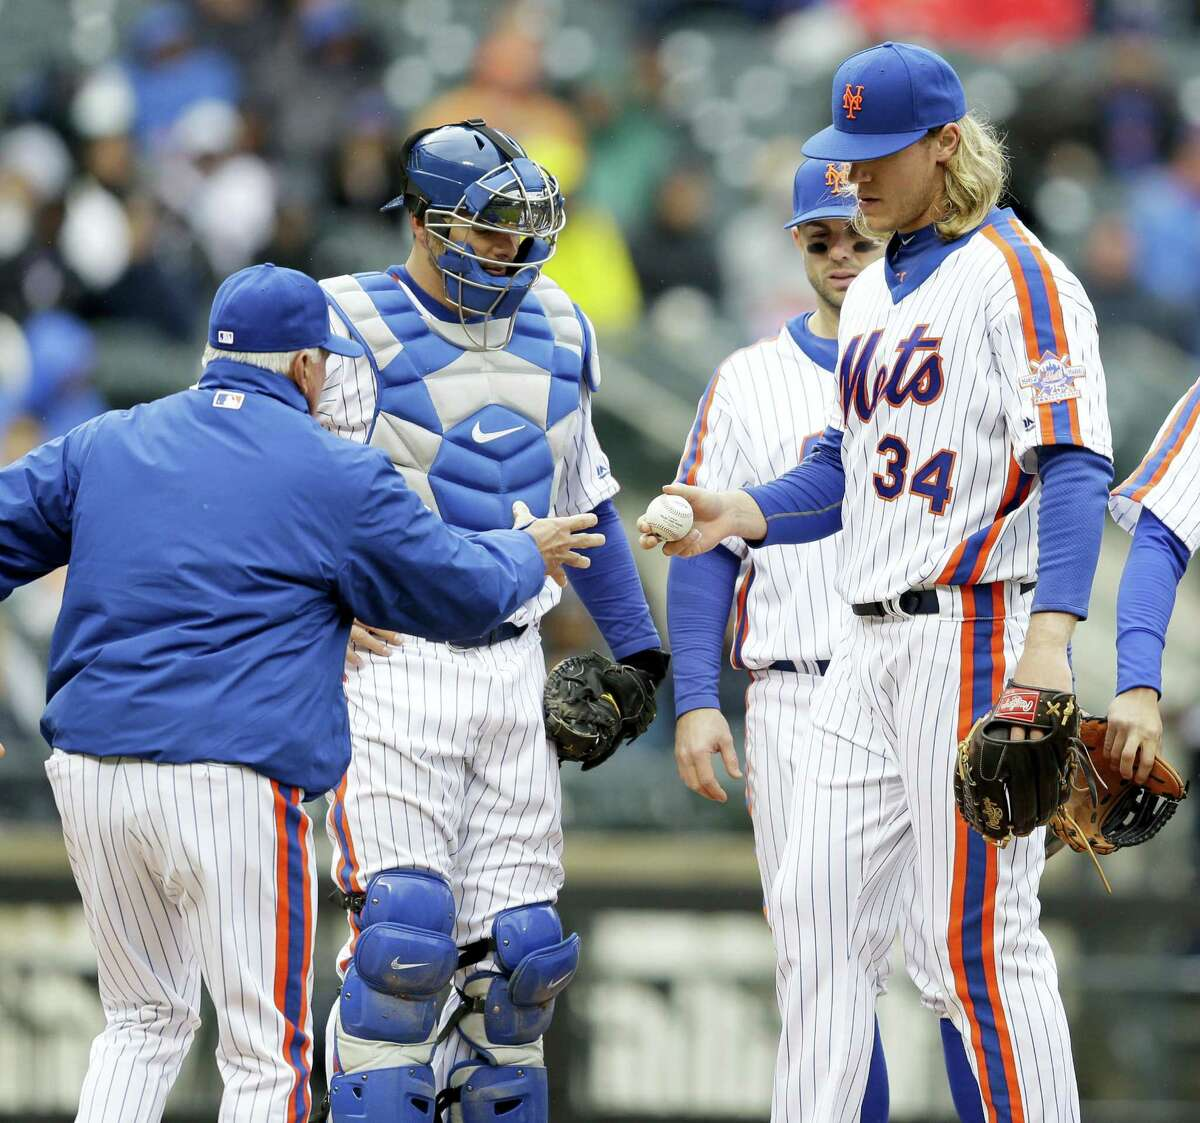 Mets starting pitcher Noah Syndergaard, right, leaves the game during the sixth inning against the Giants on Sunday.